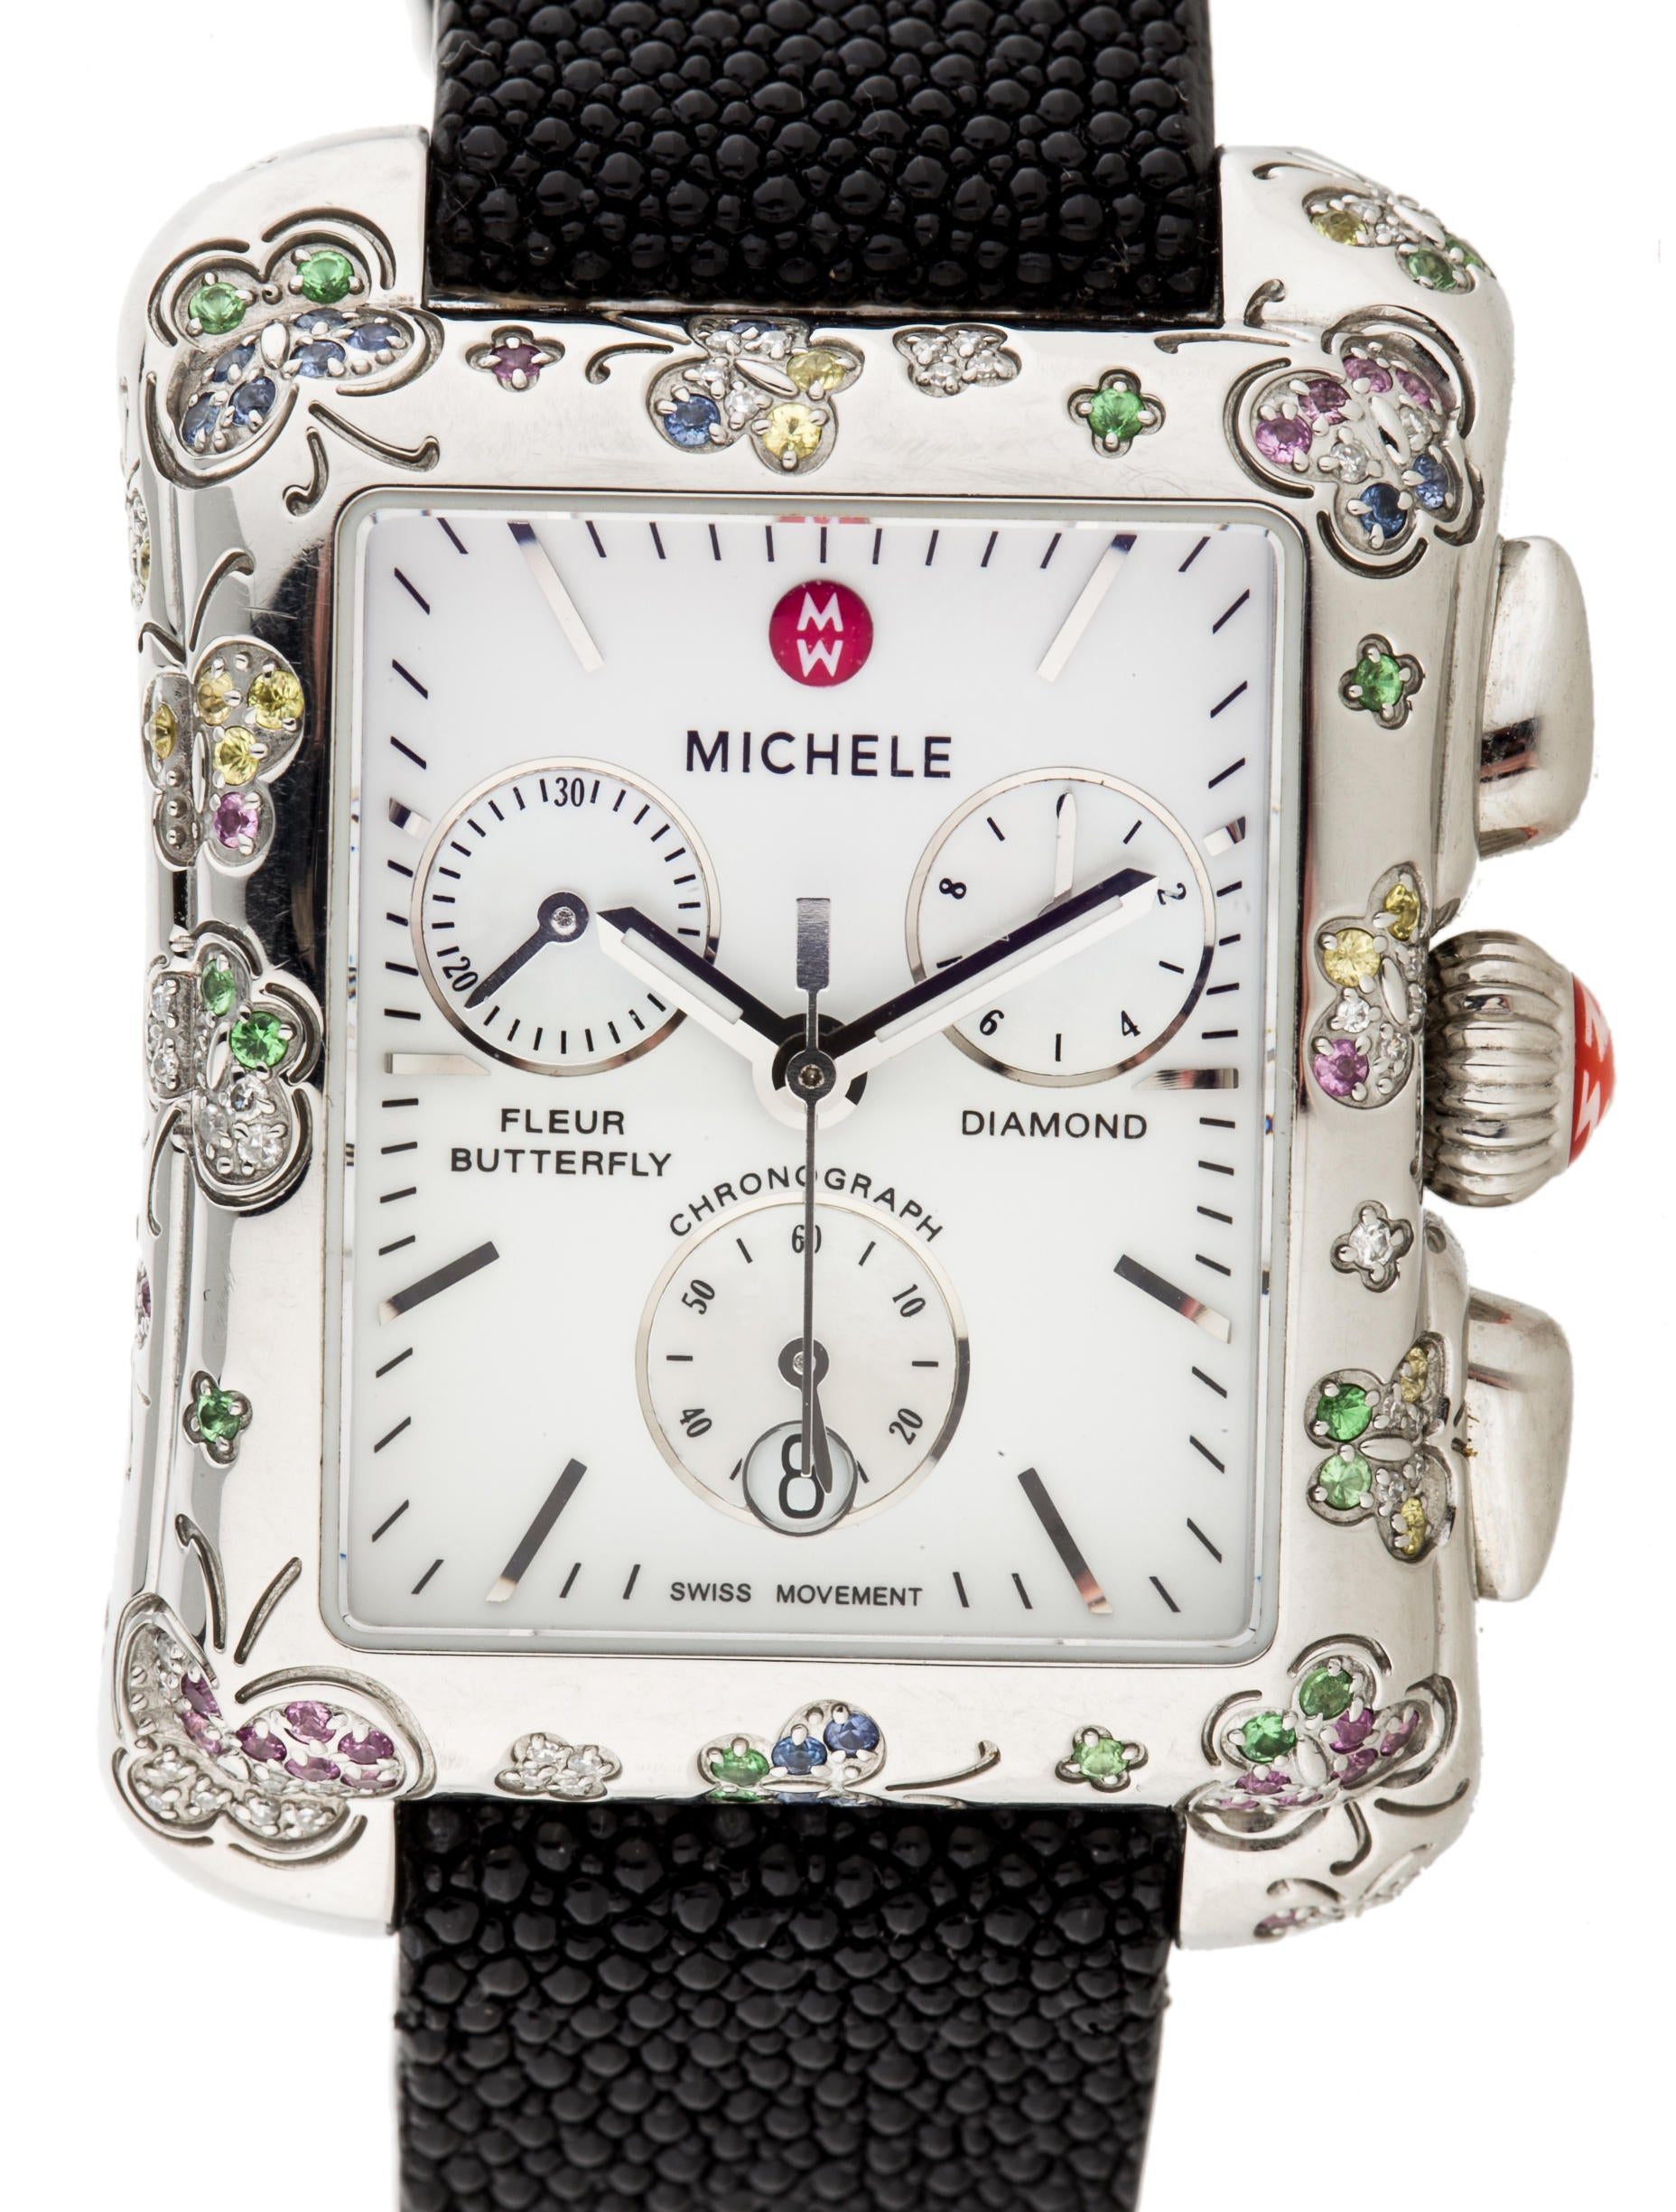 watches products pin silver s sterling lady the store marcasites with butterfly jewelry brooch